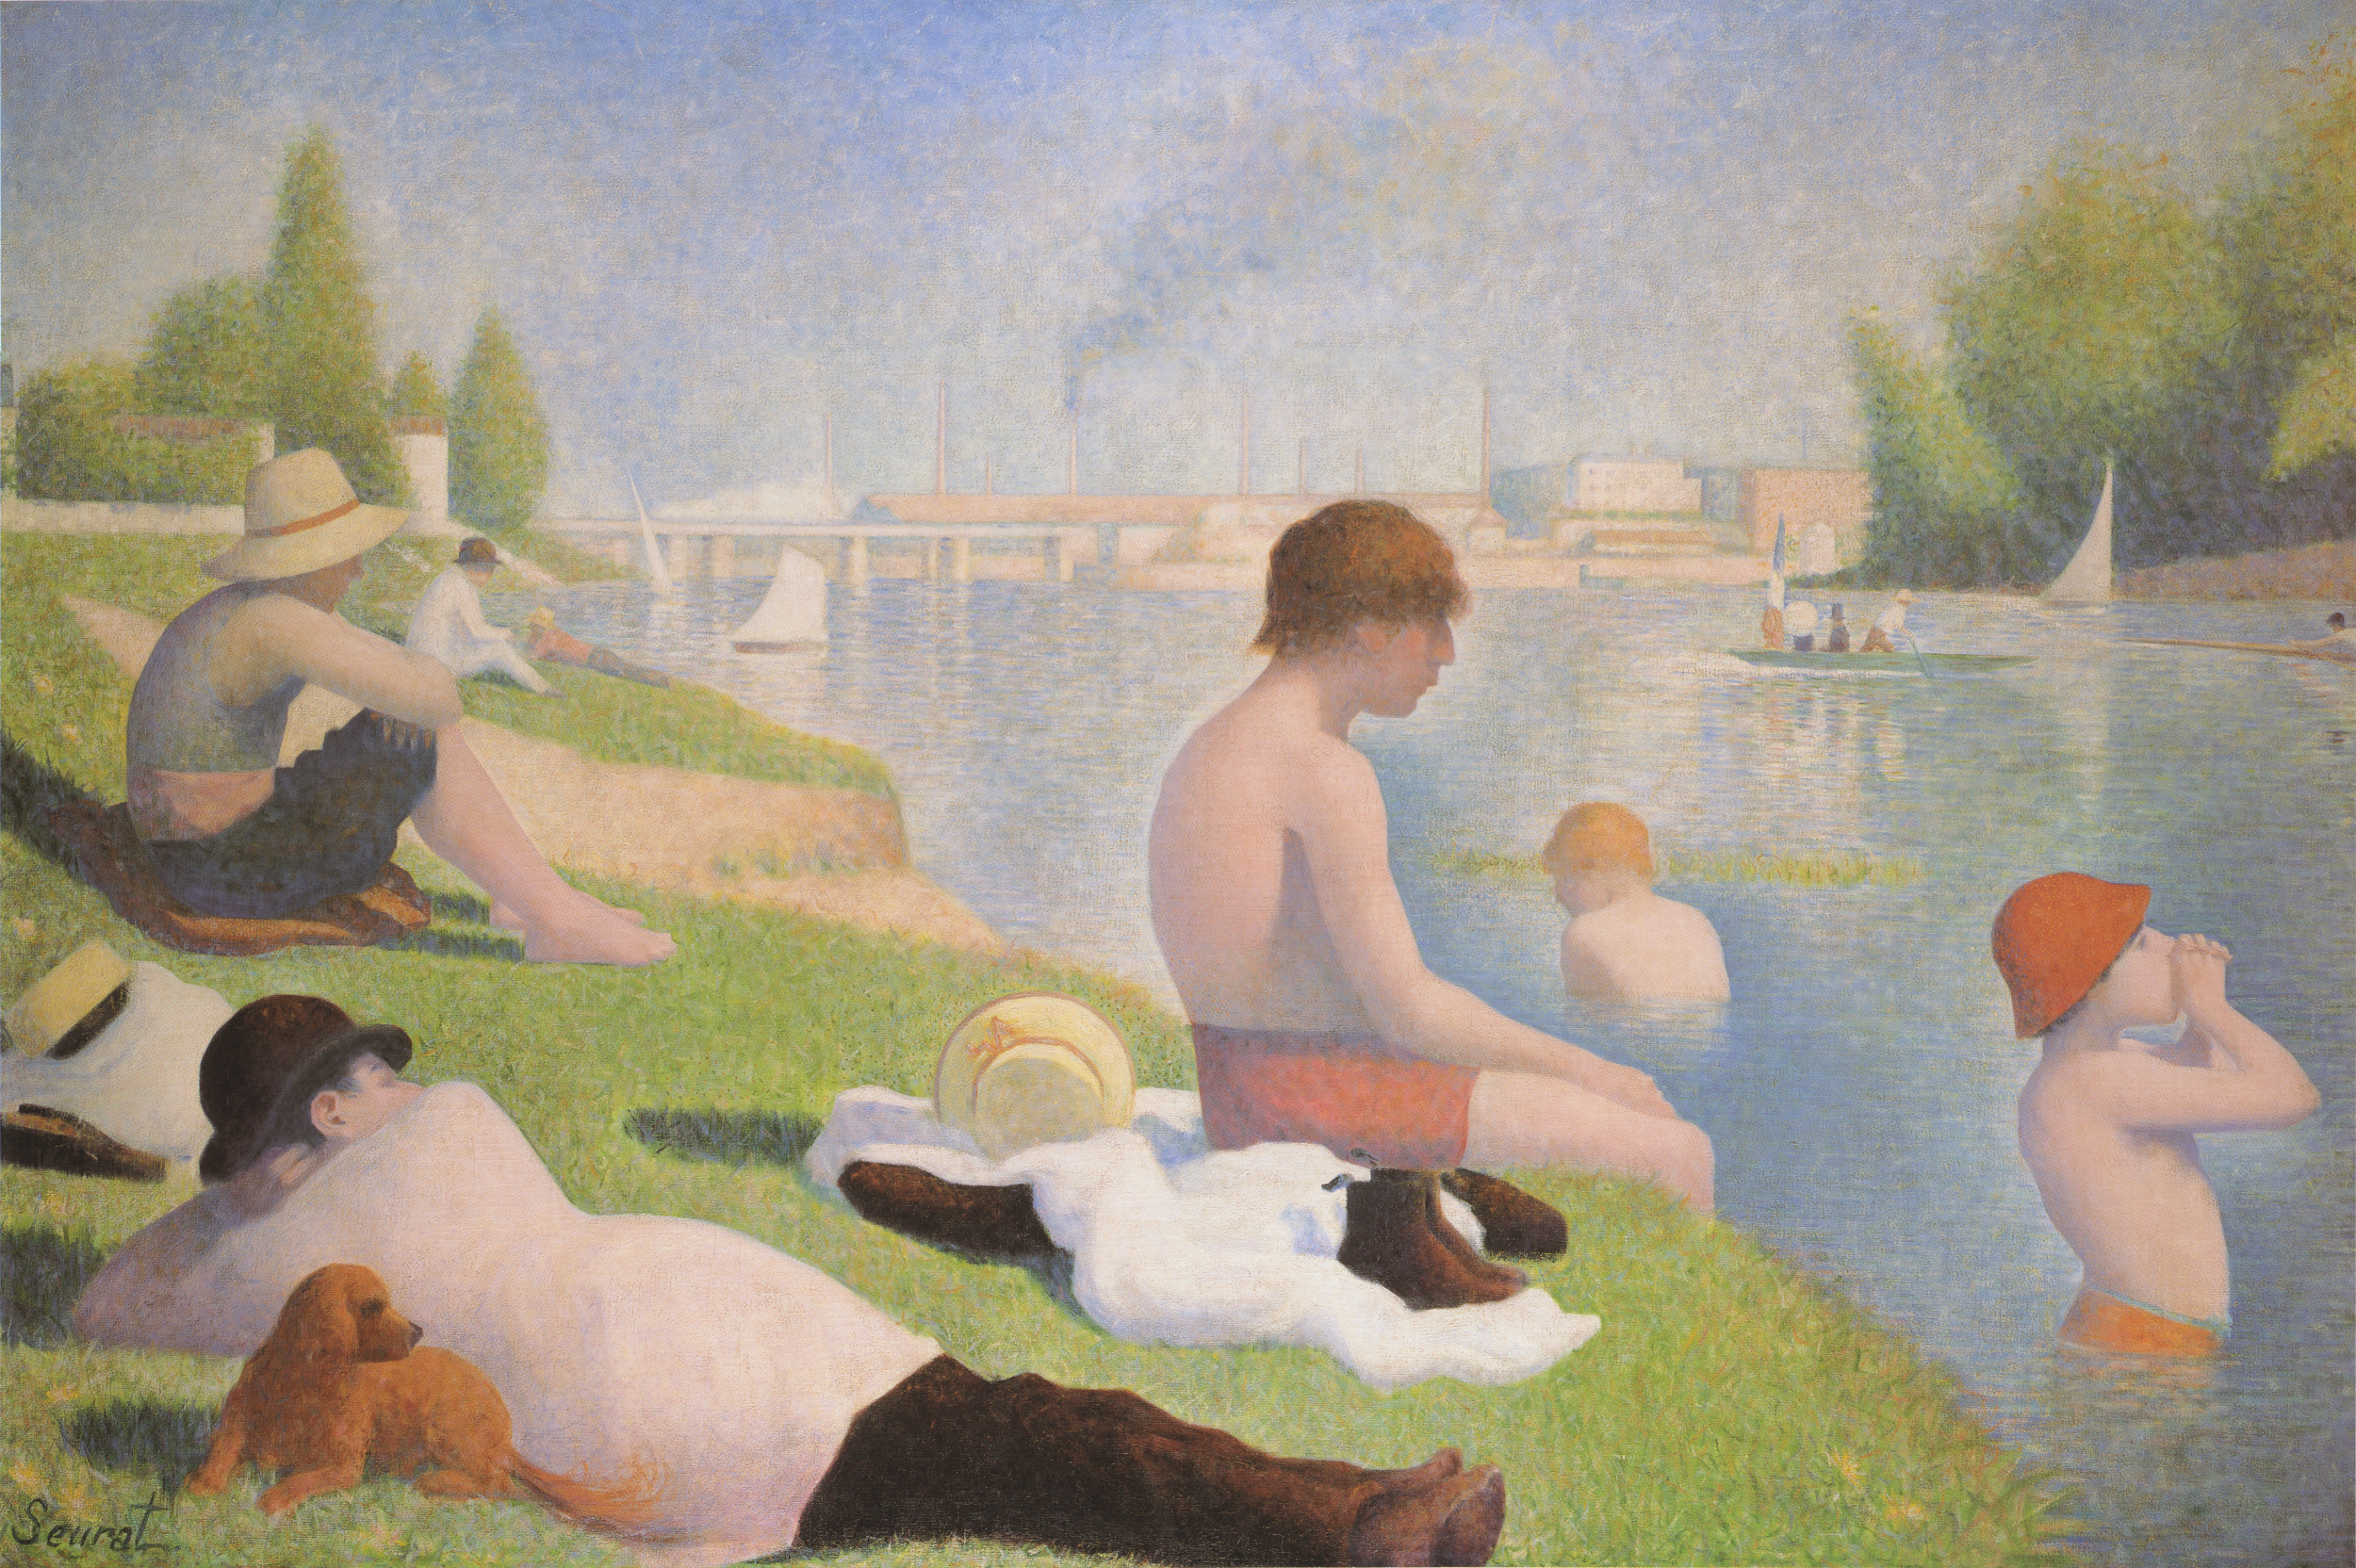 """Beauty is a miracle of things going together imperfectly. You have to keep taking the next necessary stitch, and the next one, and the next. Without stitches, you just have rags. And we are not rags.""   Anne Lamott,  Stitches: A Handbook on Meaning, Hope and Repair   (Georges Seurat's Bathers at Asnières)"